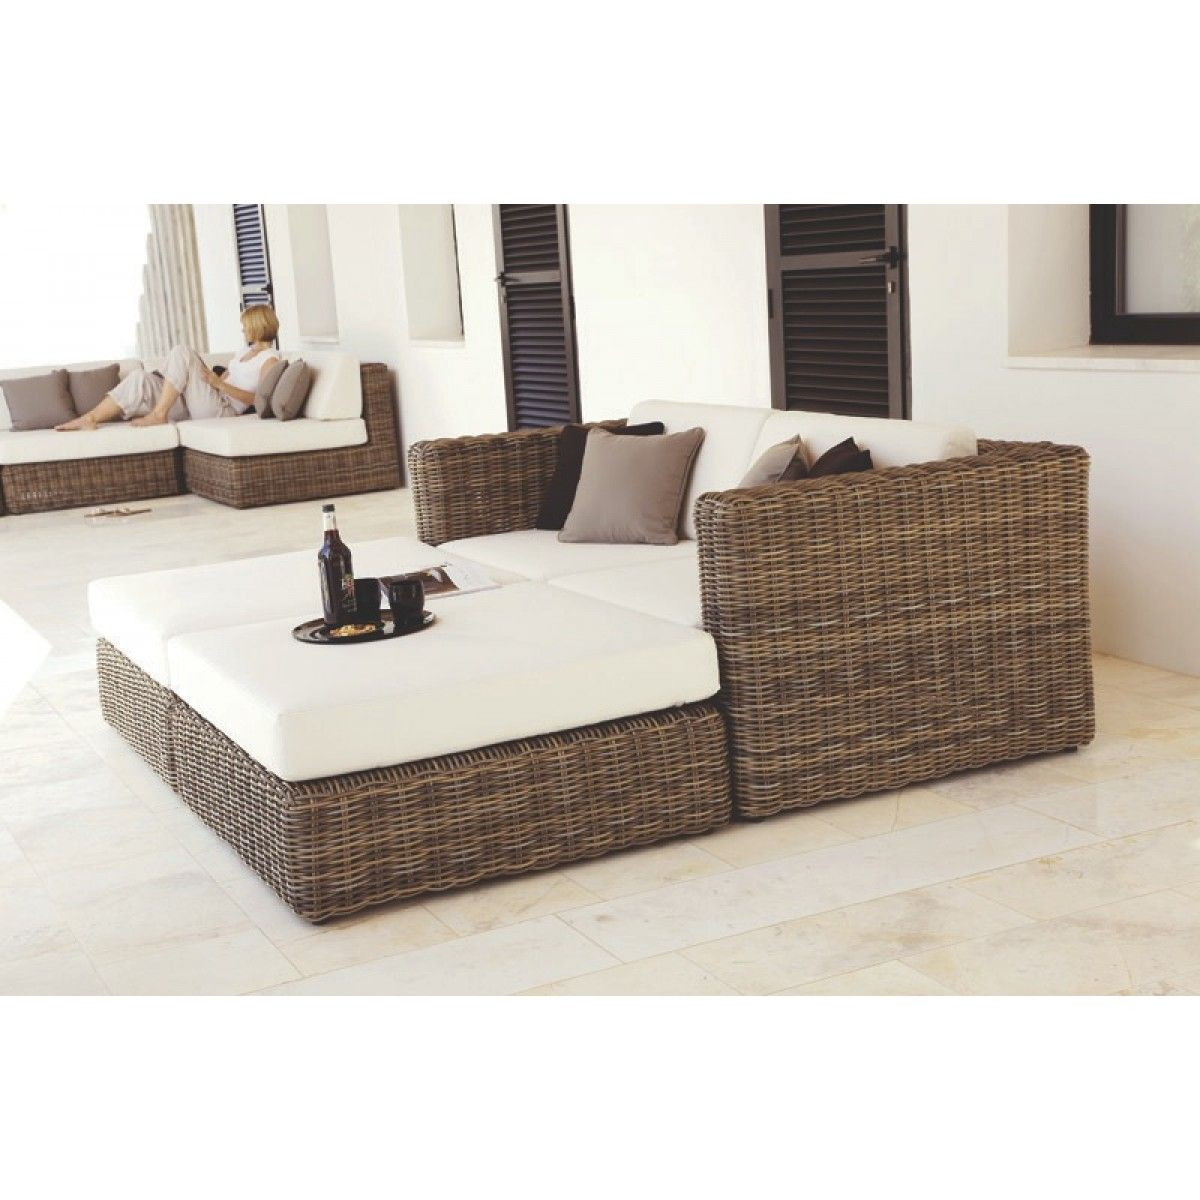 Furniture · Outdoor Furniture : Havana Modular Ottoman